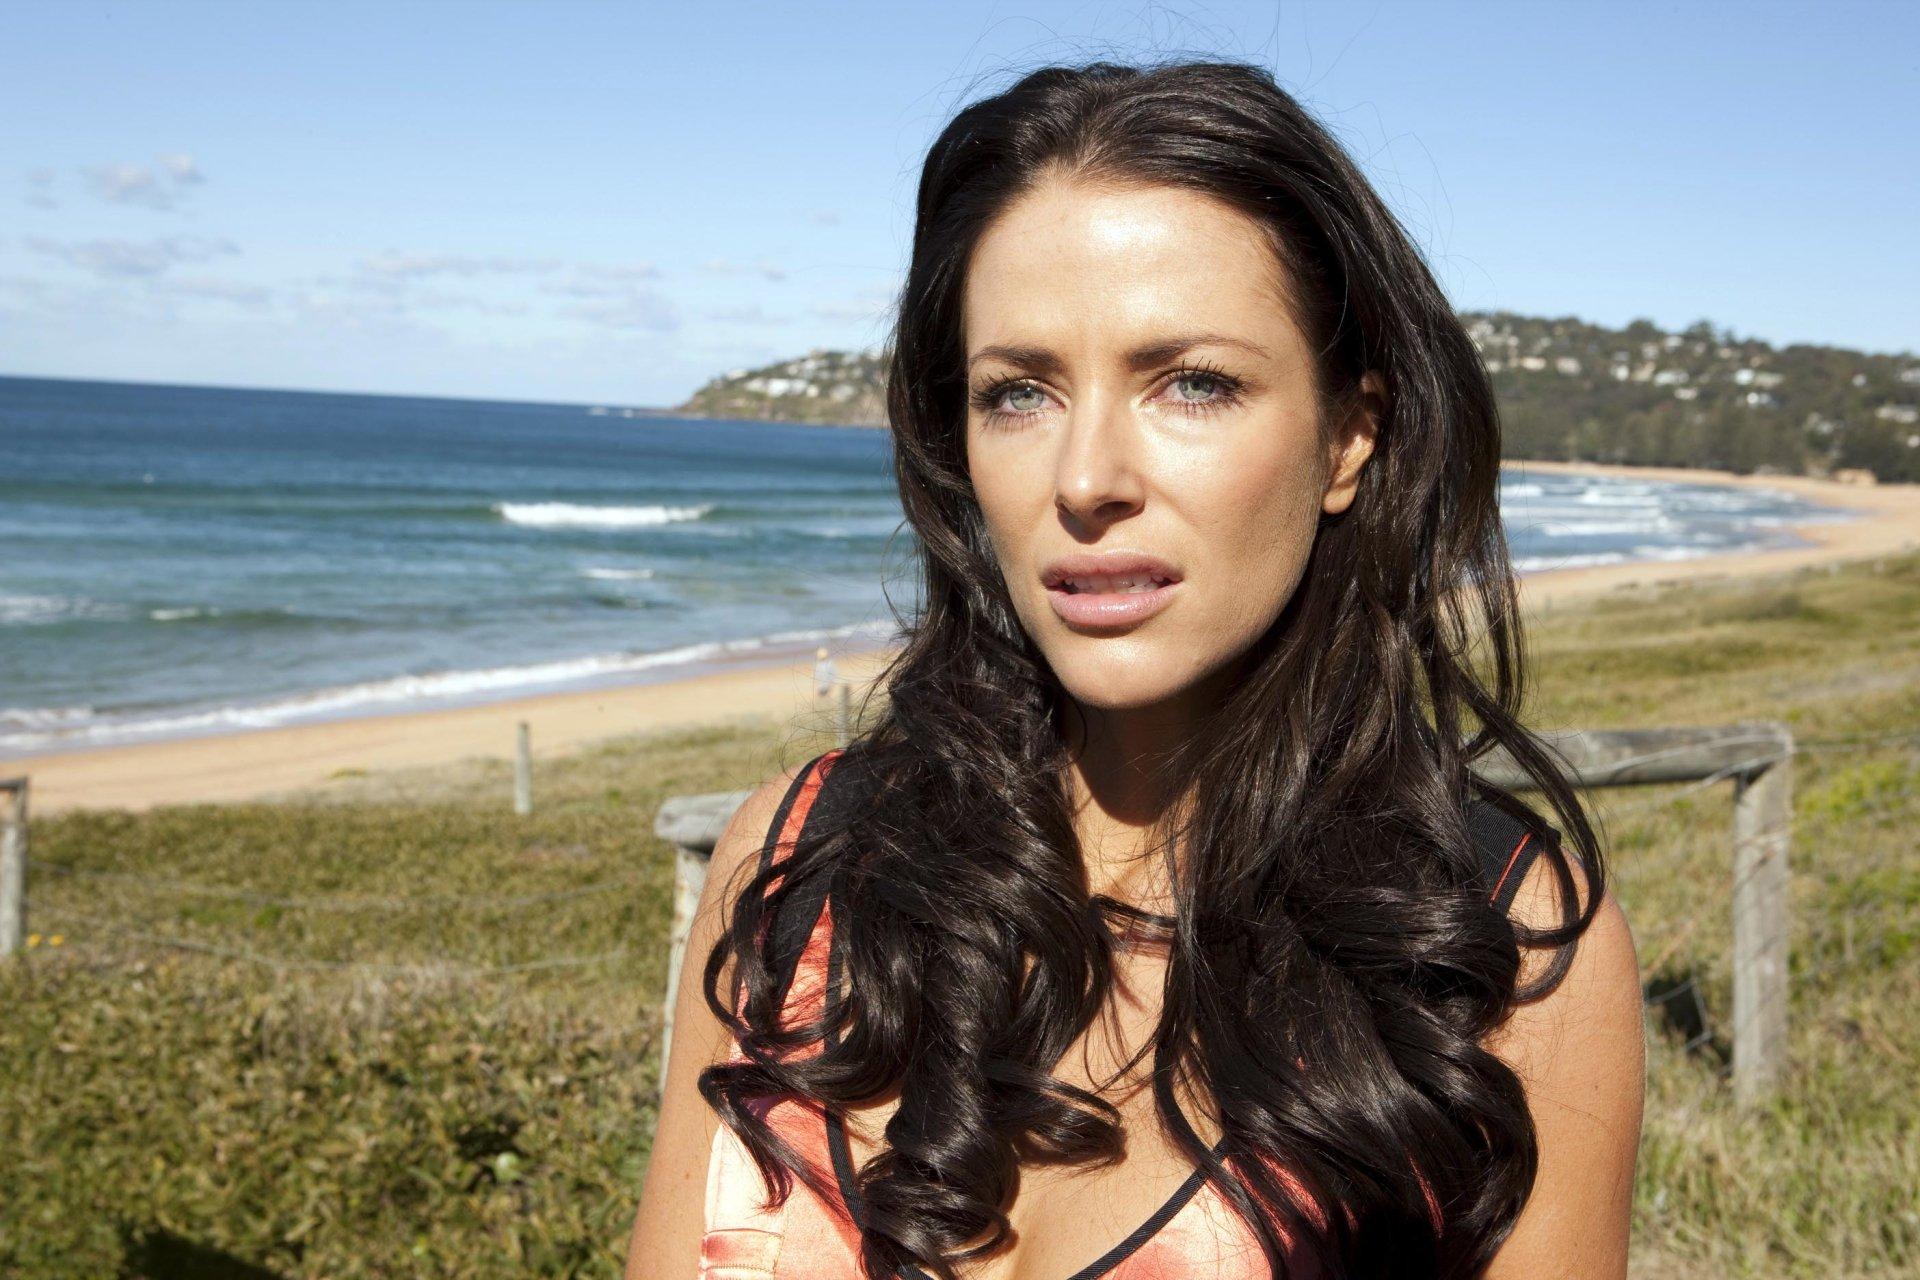 Home and away full hd wallpaper and background image for Wallpaper home and away